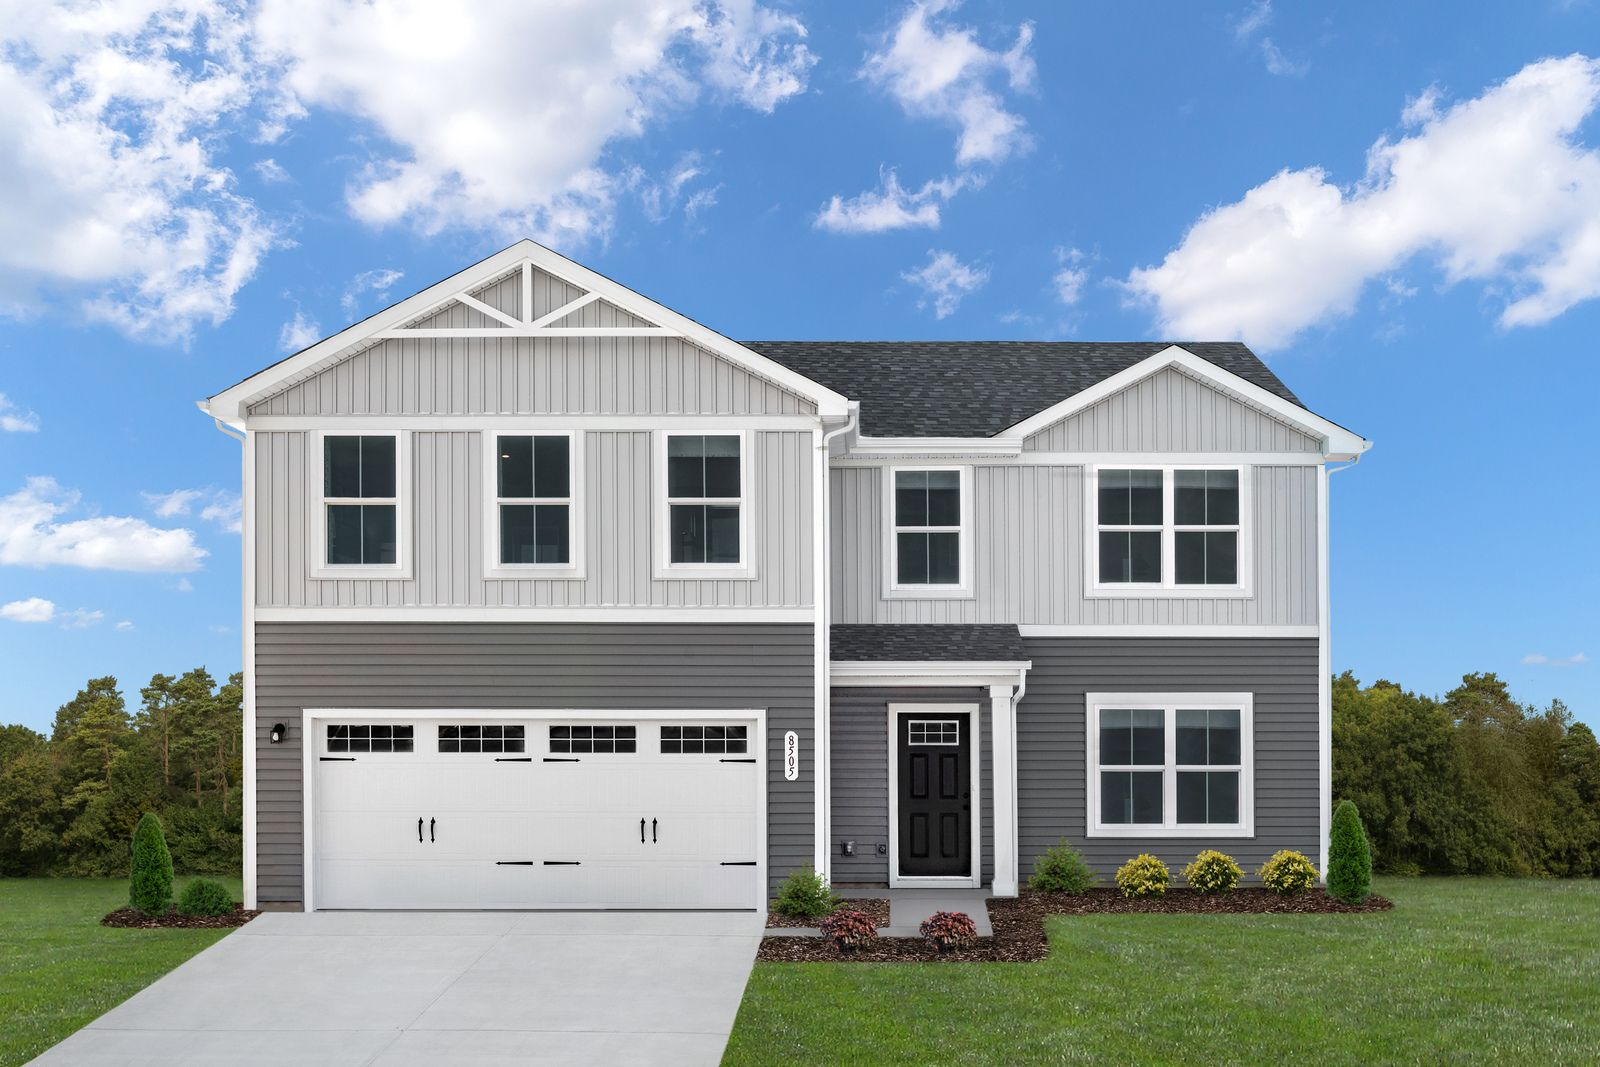 'Briar Hollow' by Ryan Homes-RCH in Buffalo-Niagara Falls